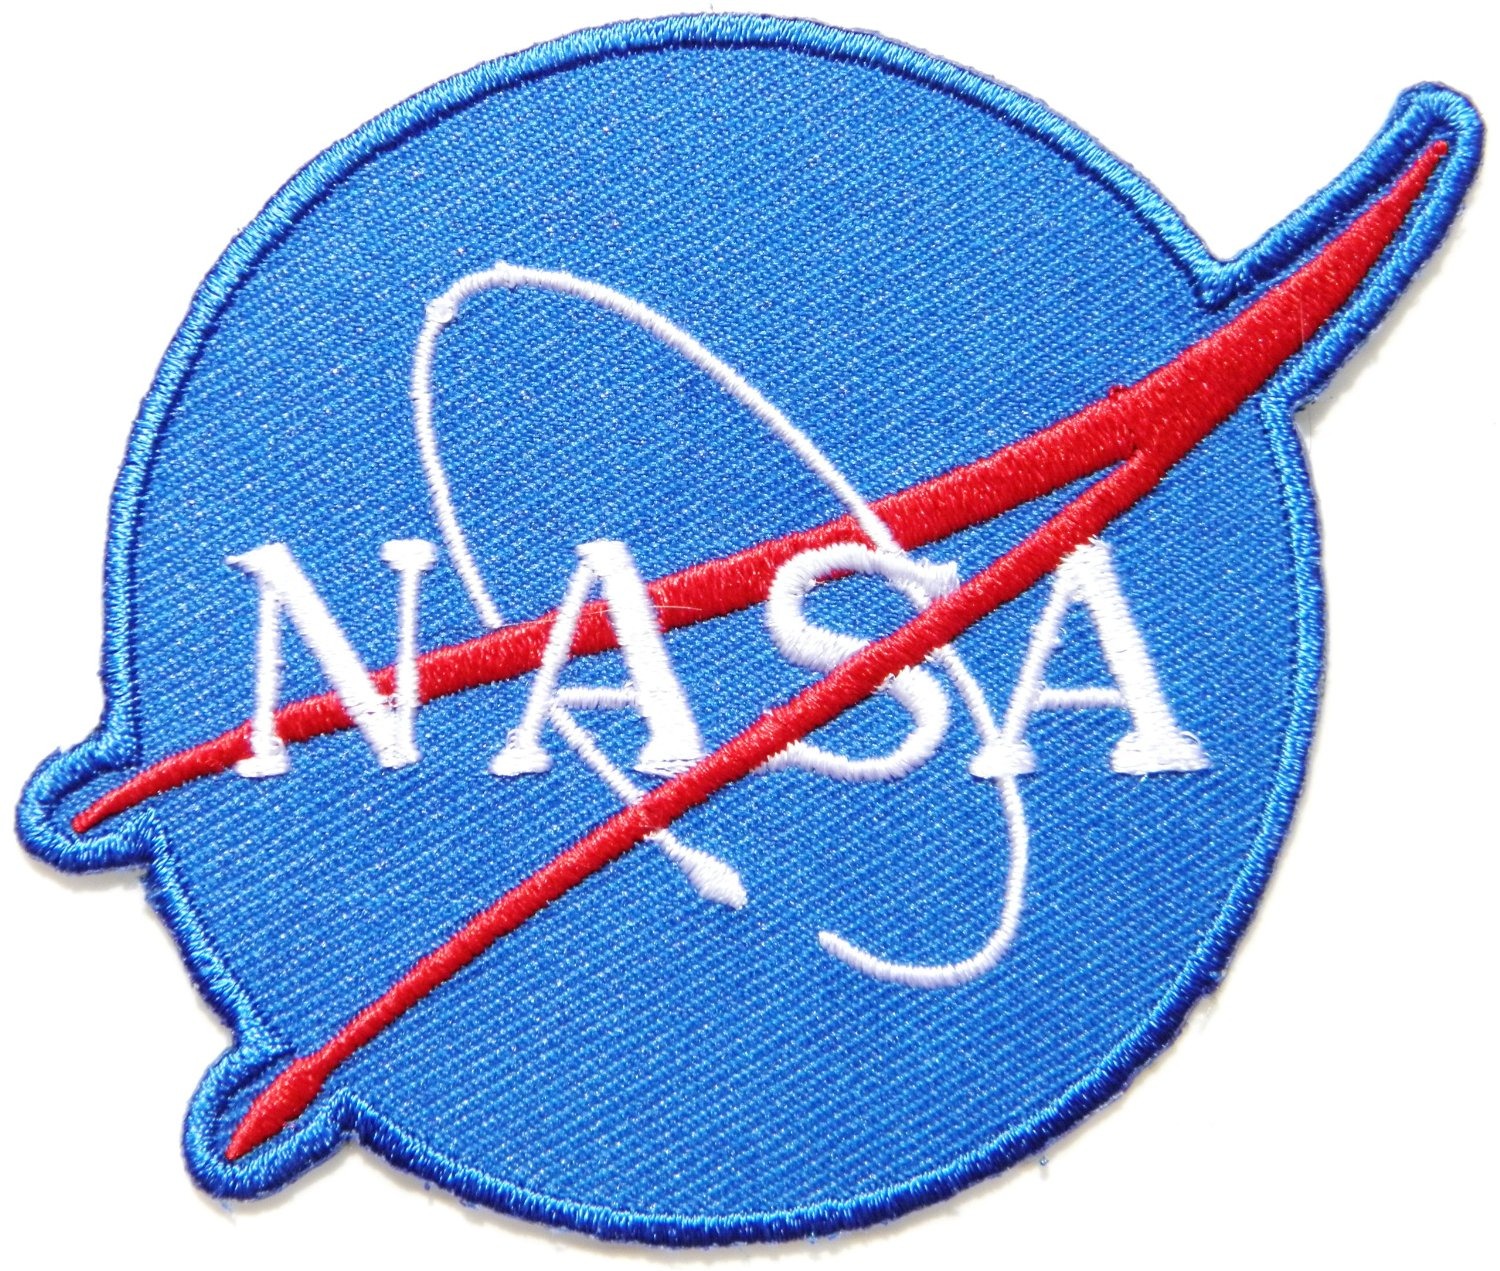 Amazon.com: NASA Space Mission Logo Kid Uniform T-shirt ...